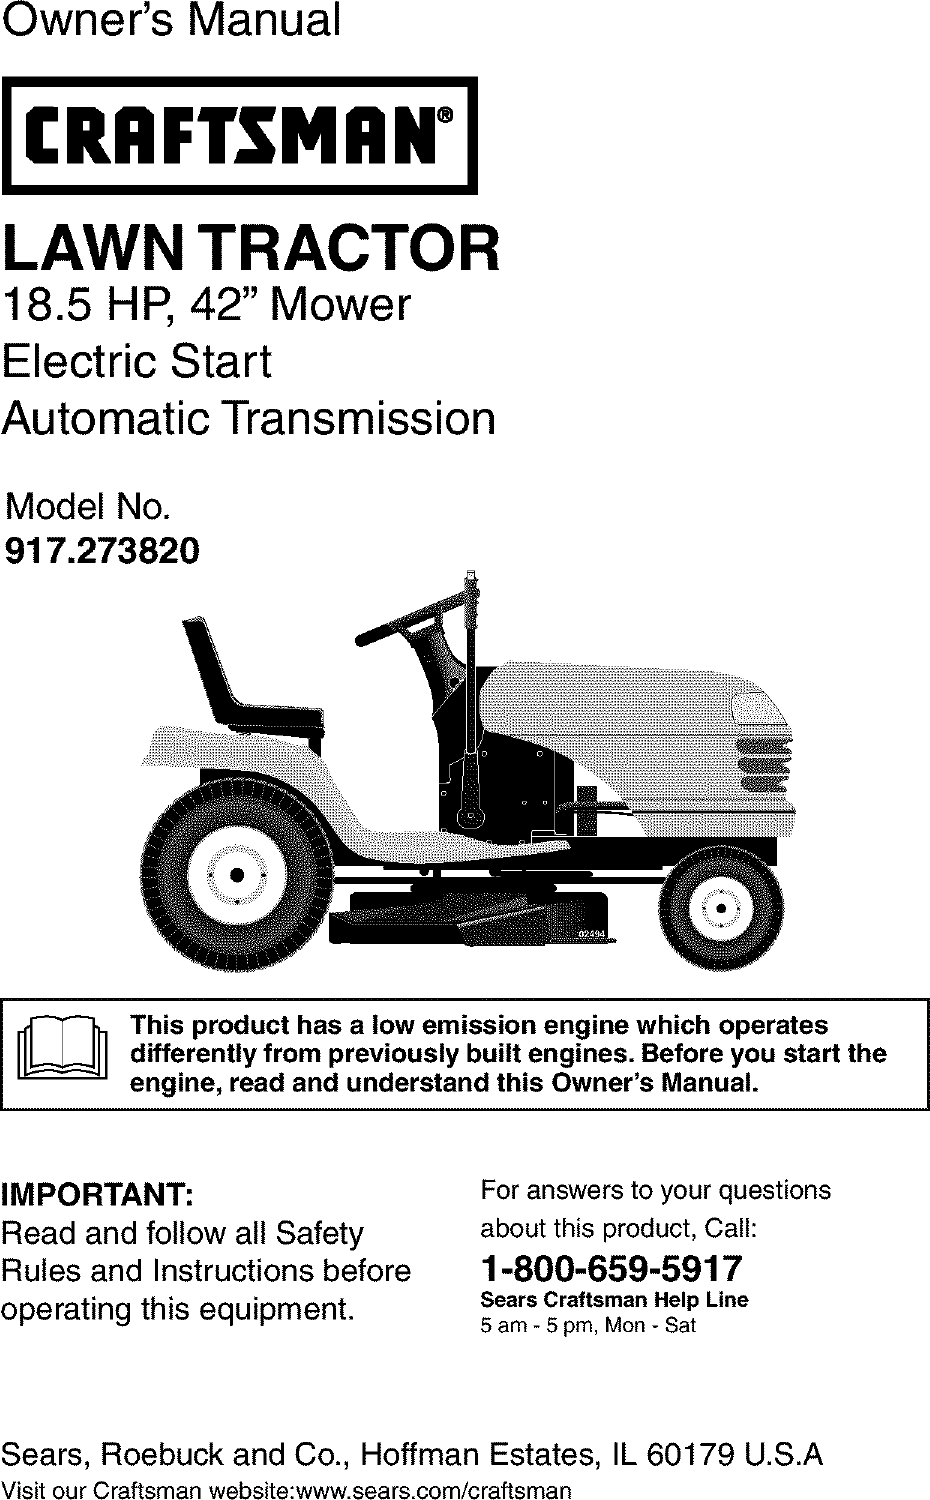 Wiring Diagram Craftsman Model 917 273820 Trusted Schematics Mower 917273820 User Manual Tractor Manuals And Guides L0403219